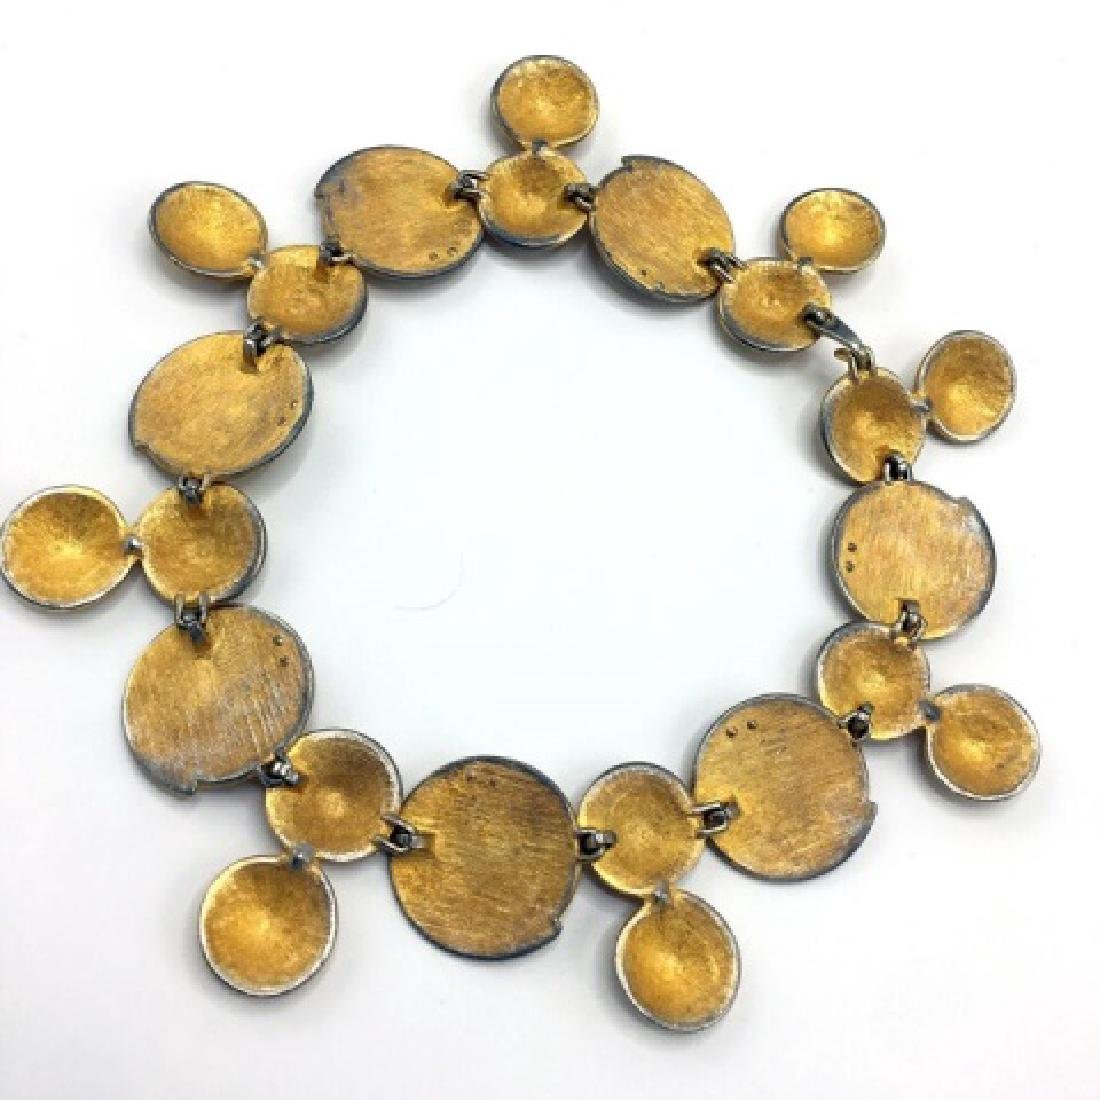 Costume Jewelry - Vintage 1980s Gold Tone Necklace - 3